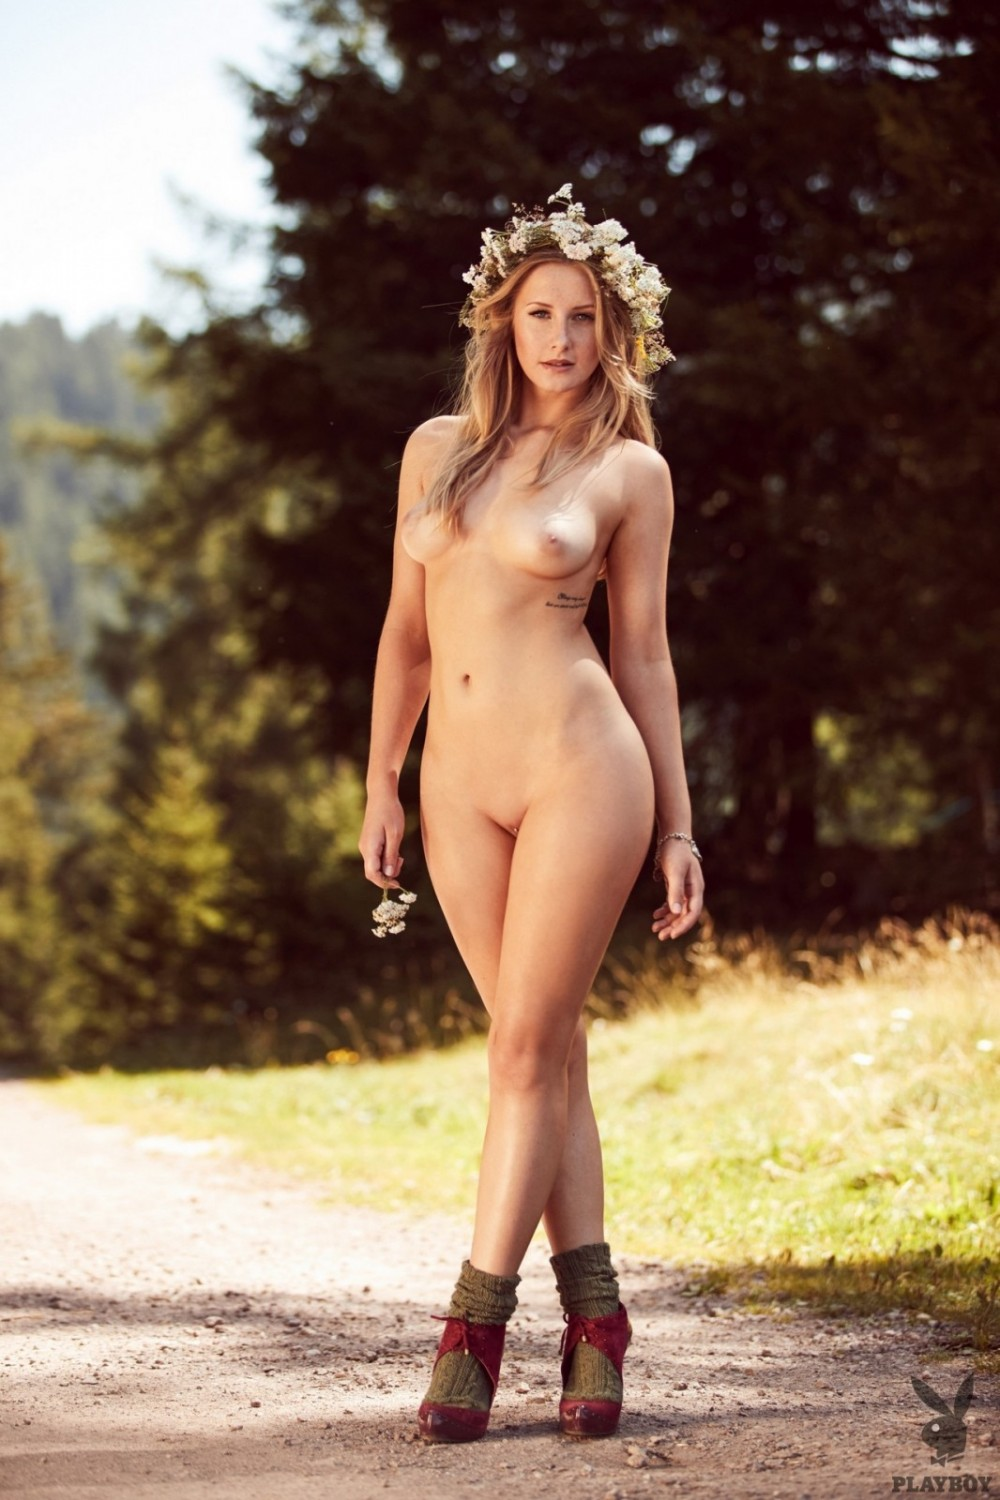 Naked babe goes for a walk totally naked